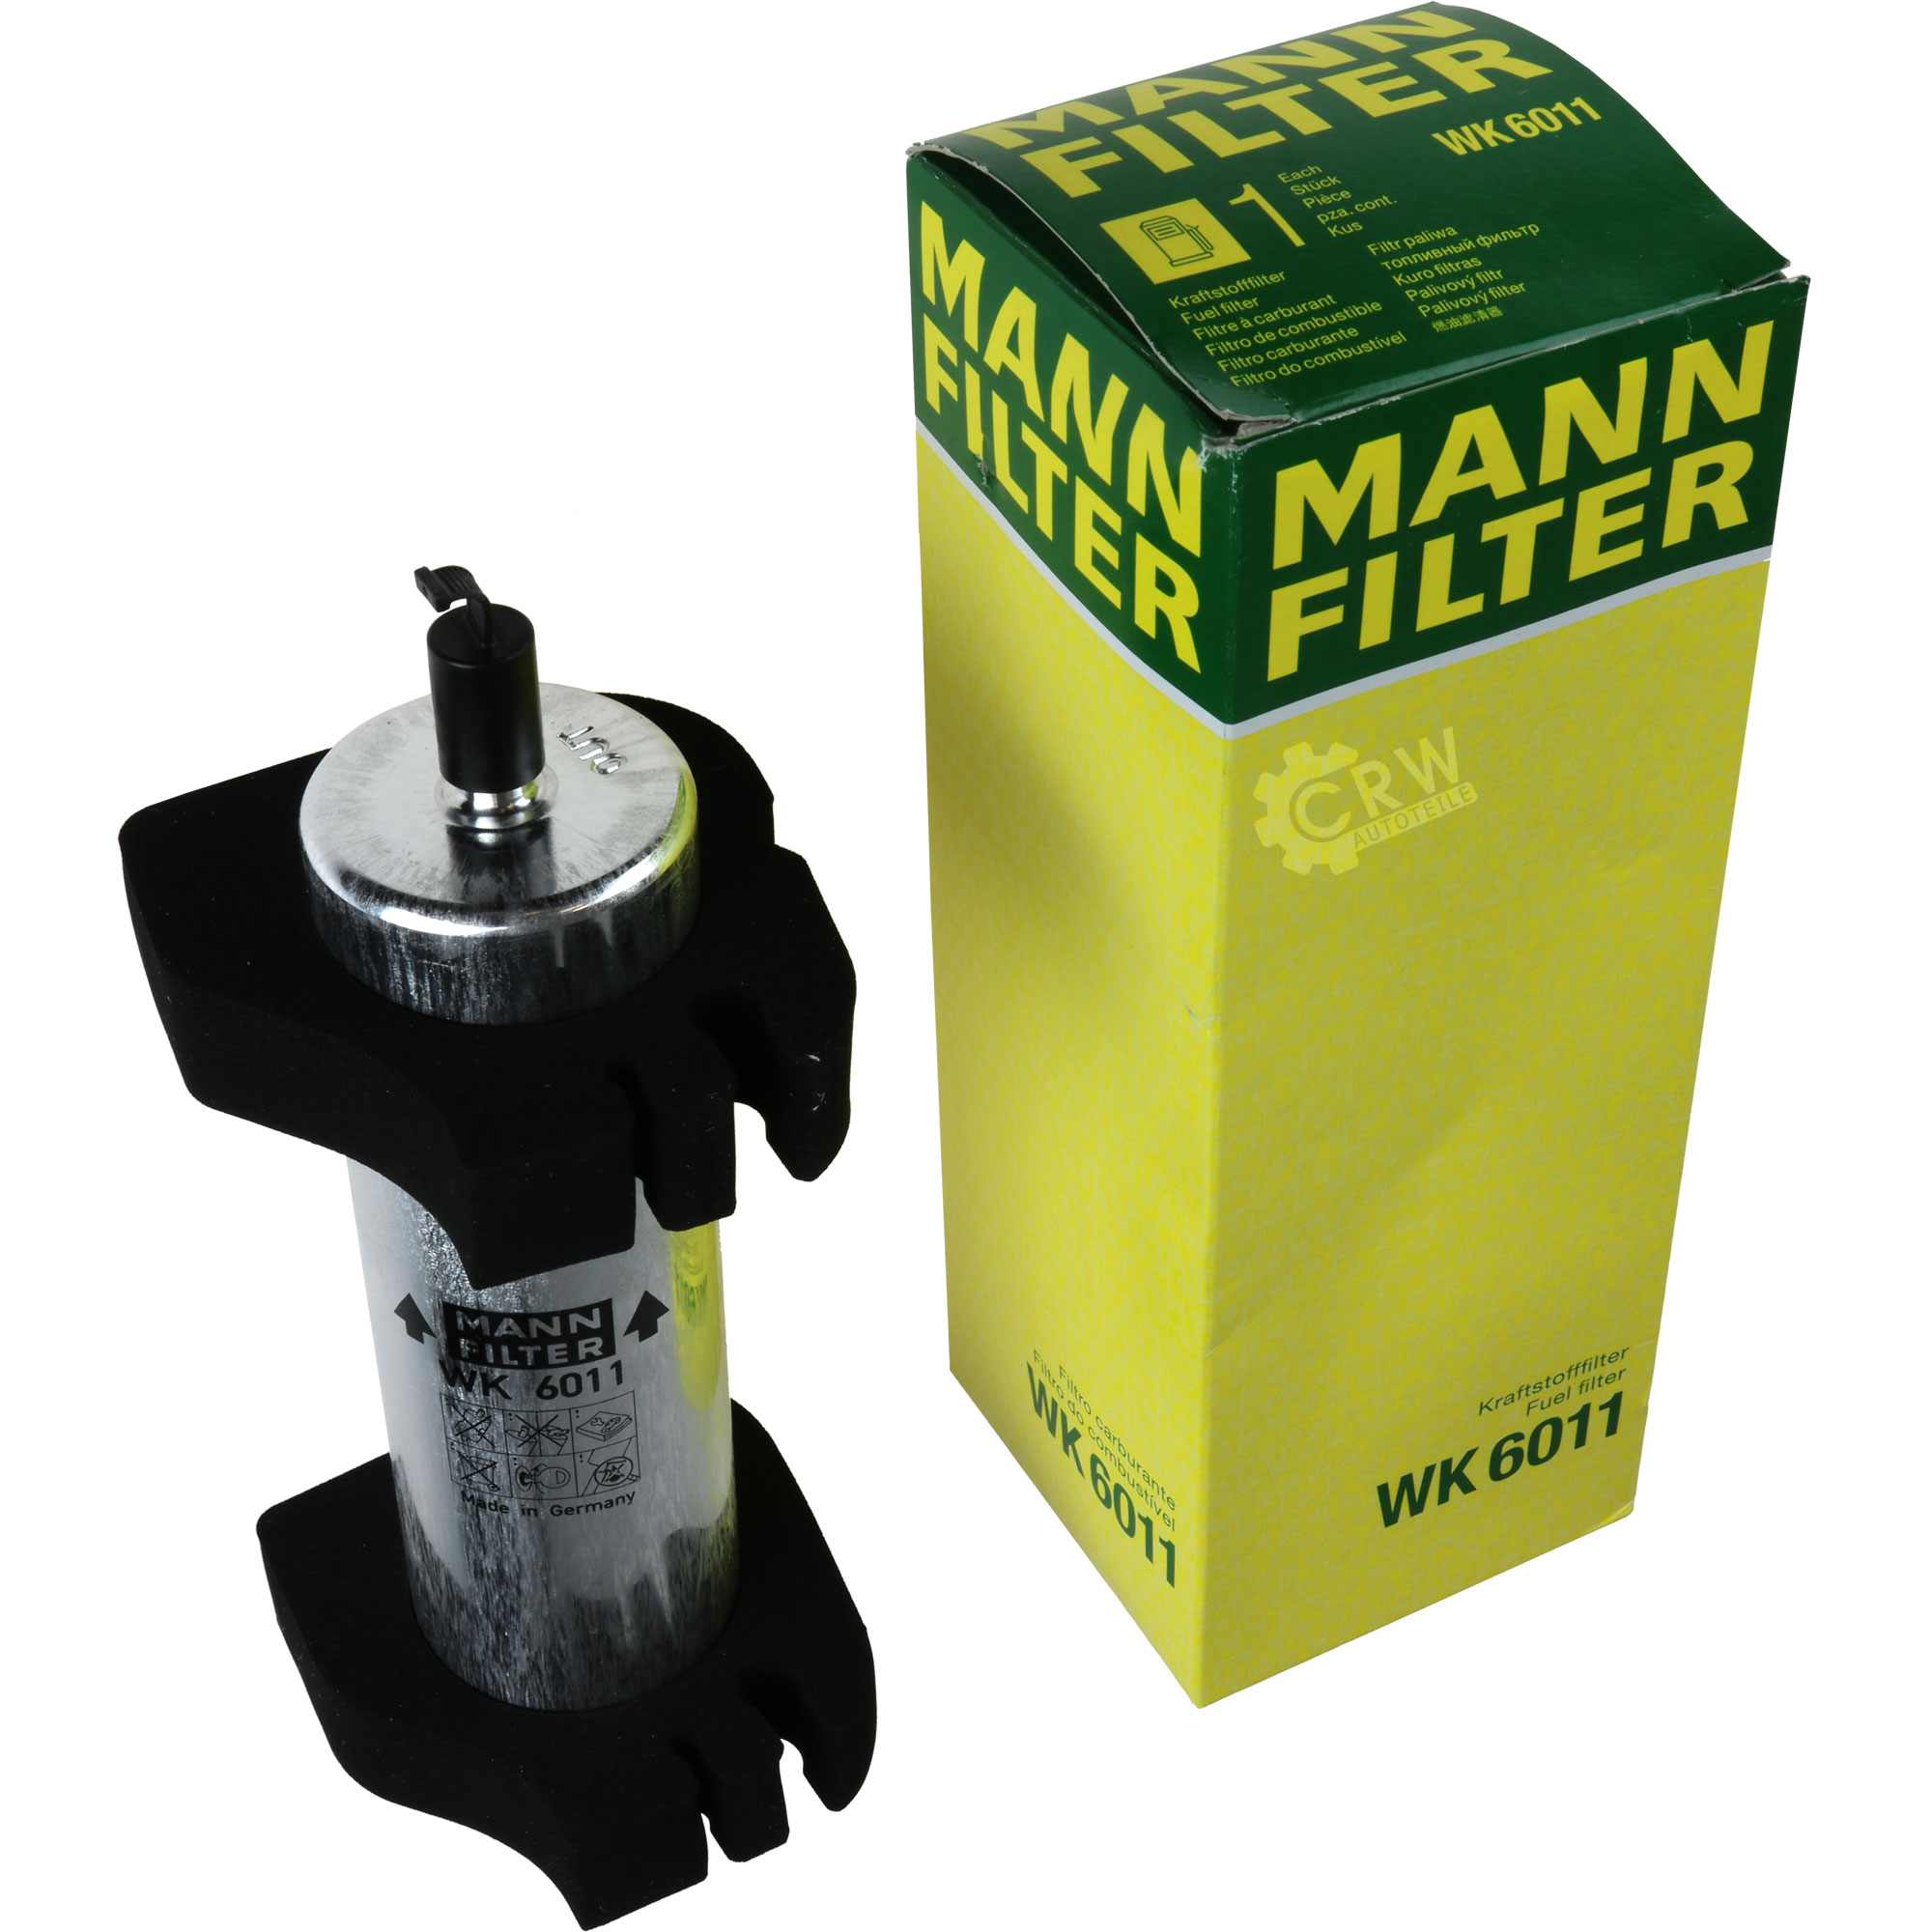 Mann Filter WK 6011 Filtro combustible